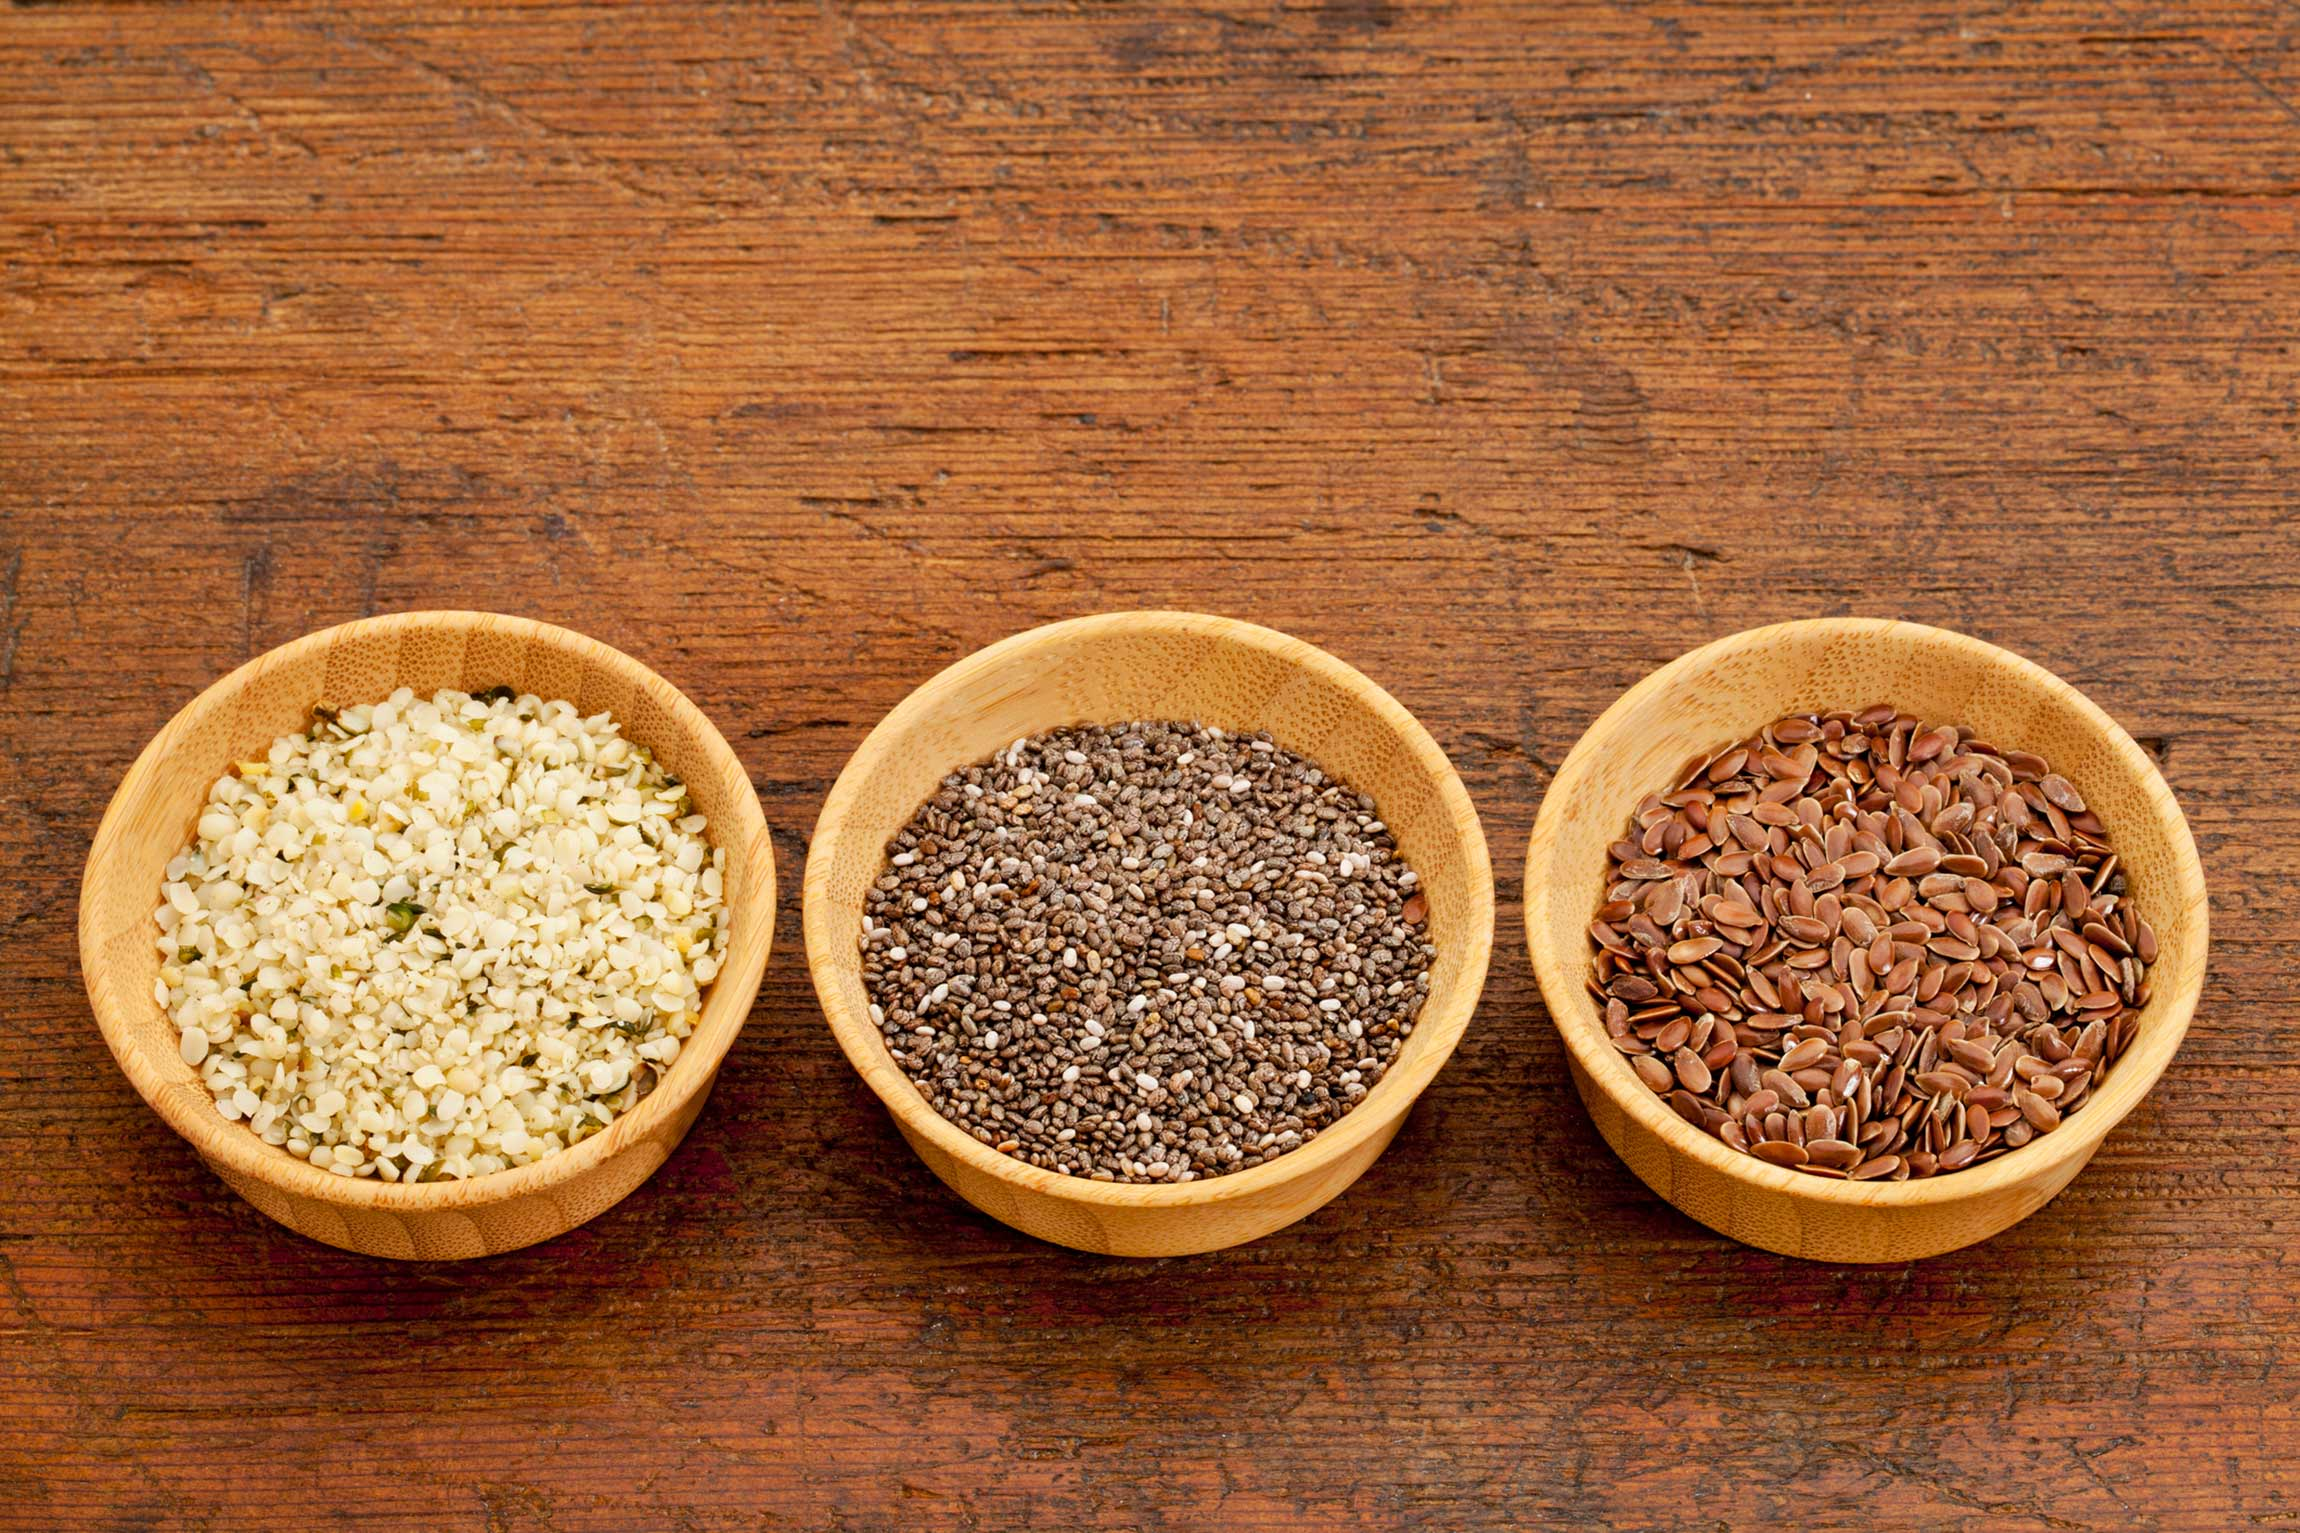 Bowls of seeds - plant-based protein